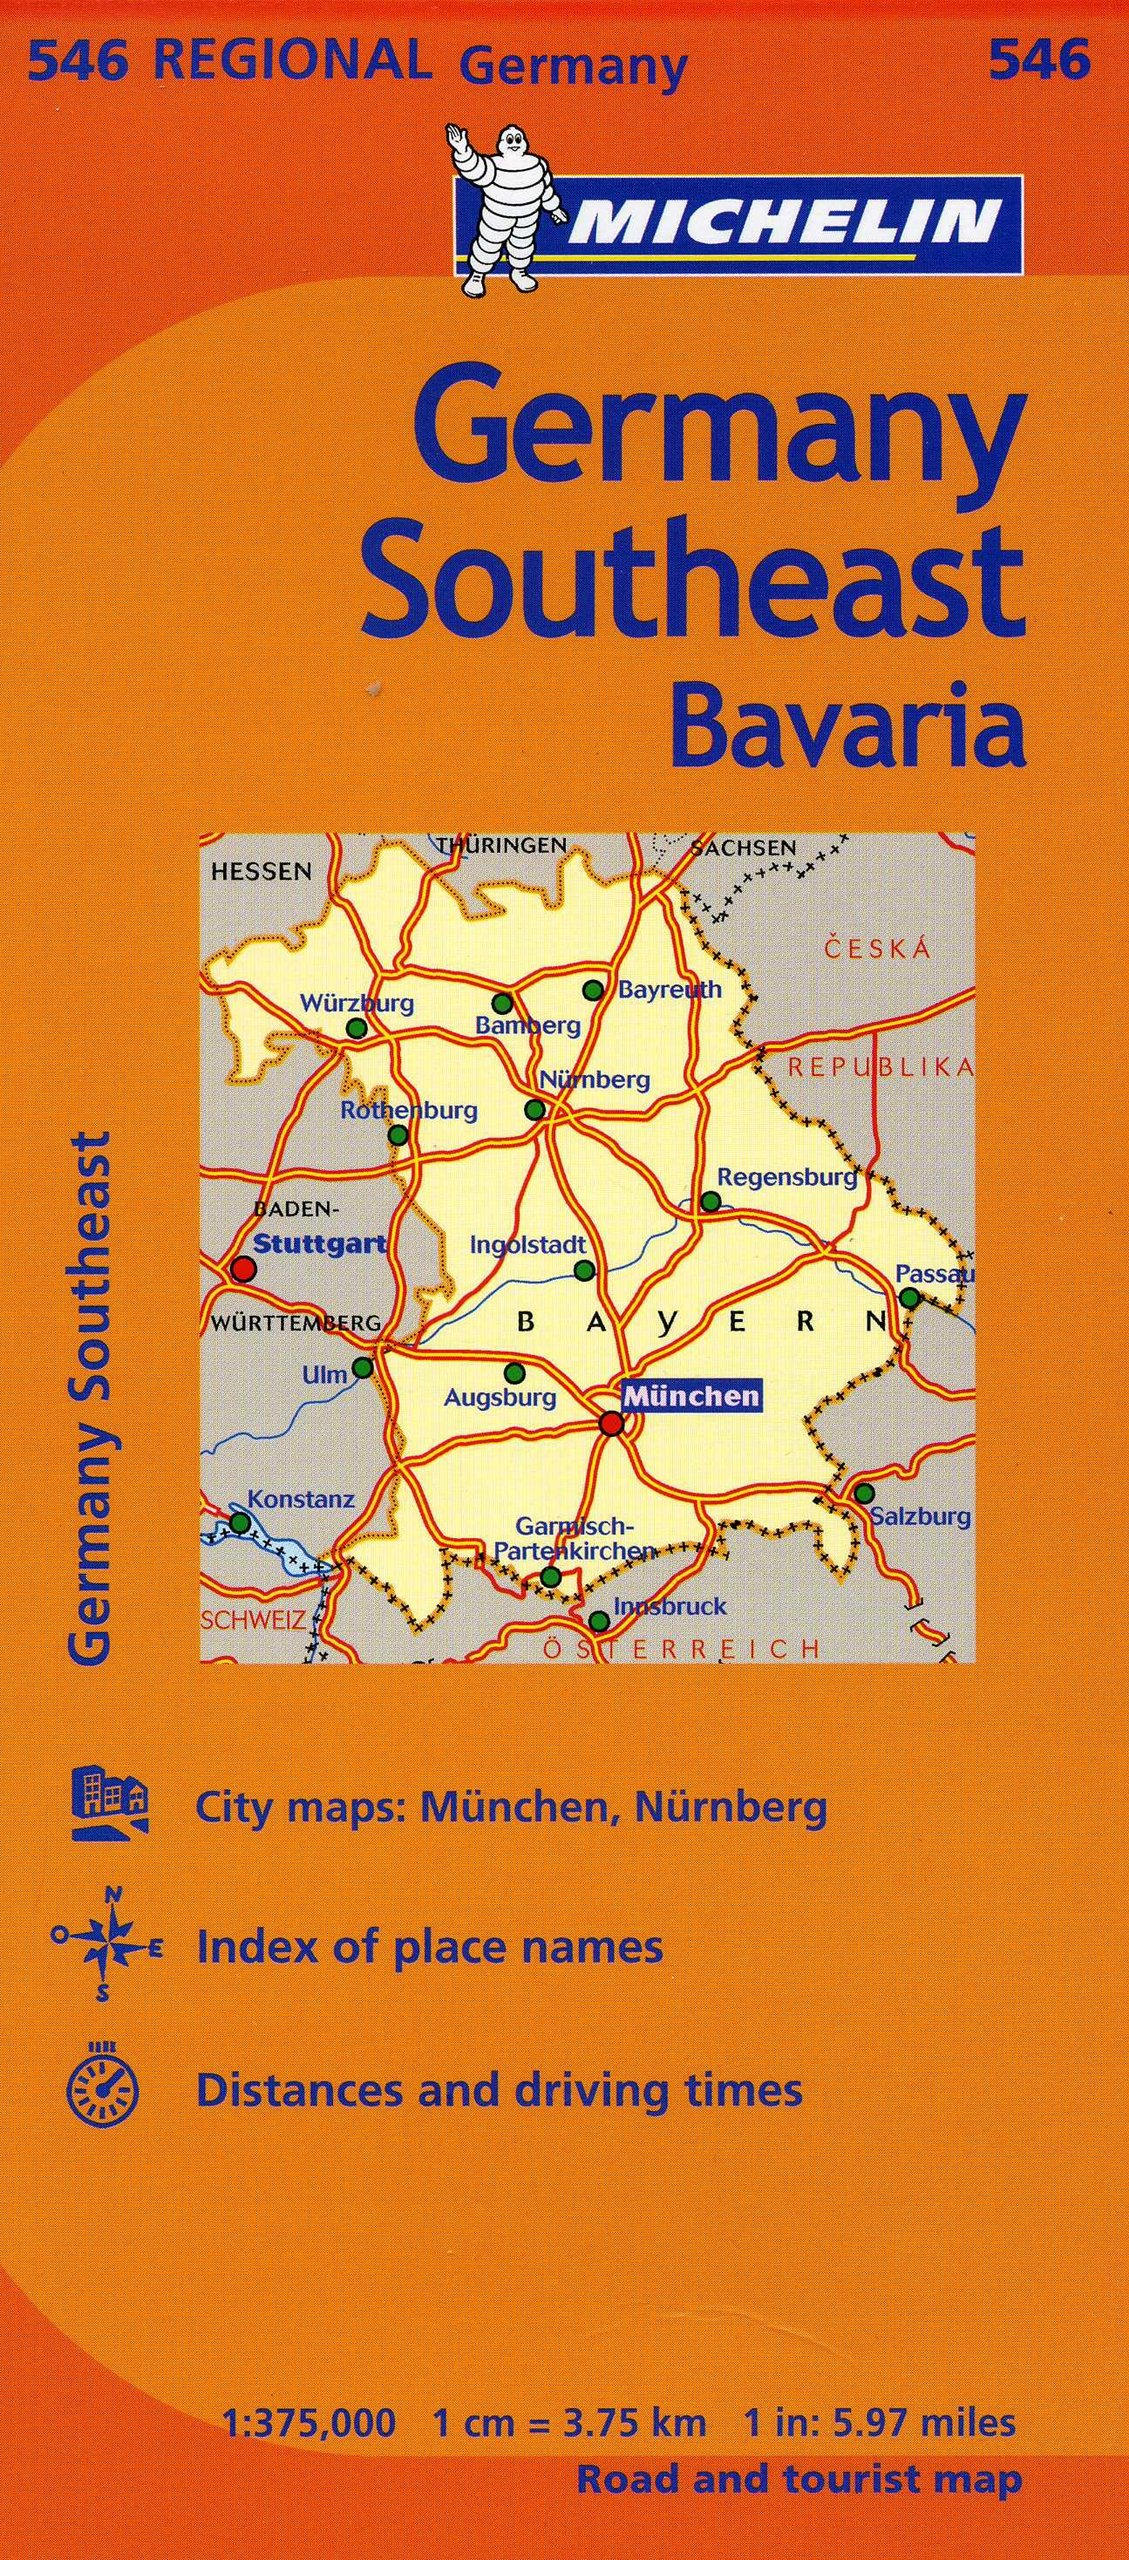 Michelin Germany Southeast Map 546 MapsRegional Michelin – Germany Map Distances